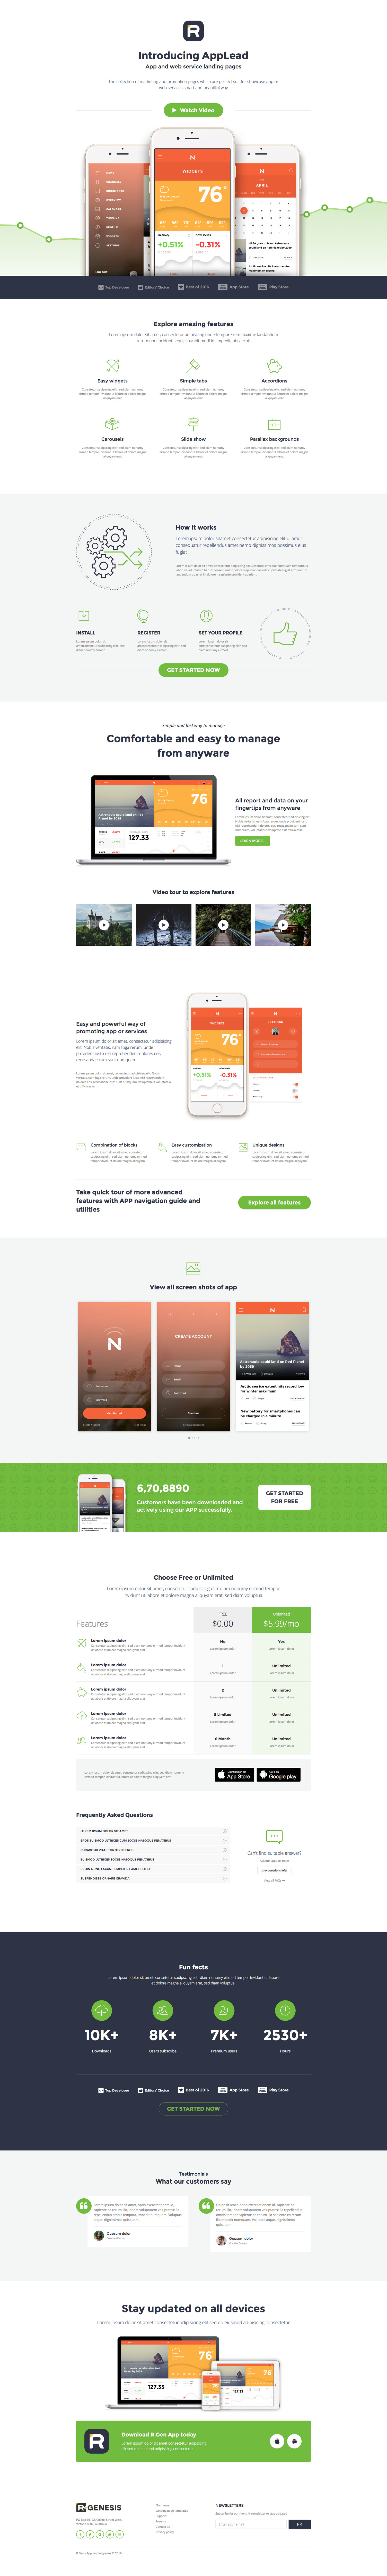 AppLead is a beautiful HTML5 App Landing Page collection which comes 10+ Landing page template variations, 1300+ Icons, Working ajax forms, Custom form pop ups, Parallax background effects and many more. Ideal for promoting apps or web services. AppLead template is built on the popular Bootstrap 3 framework.